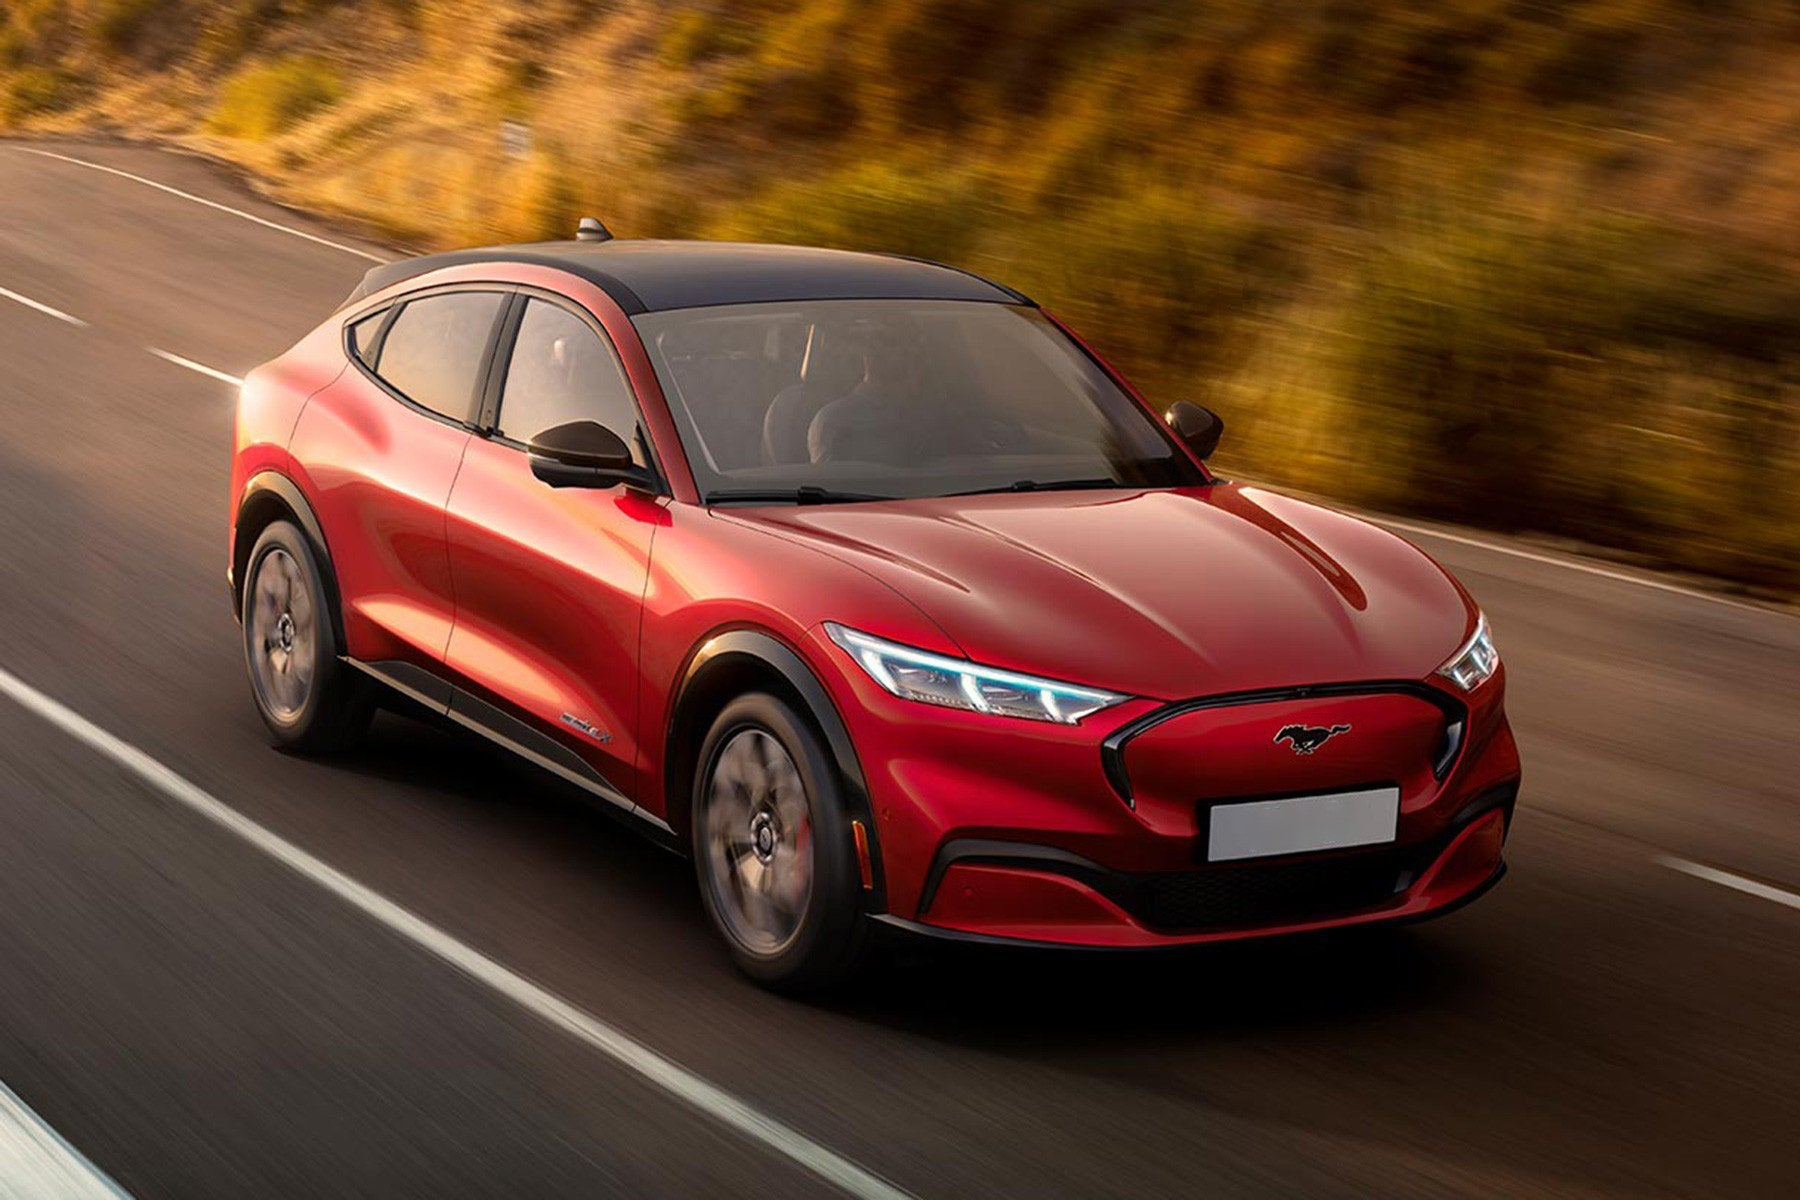 2021 Ford Mustang Mach E Price